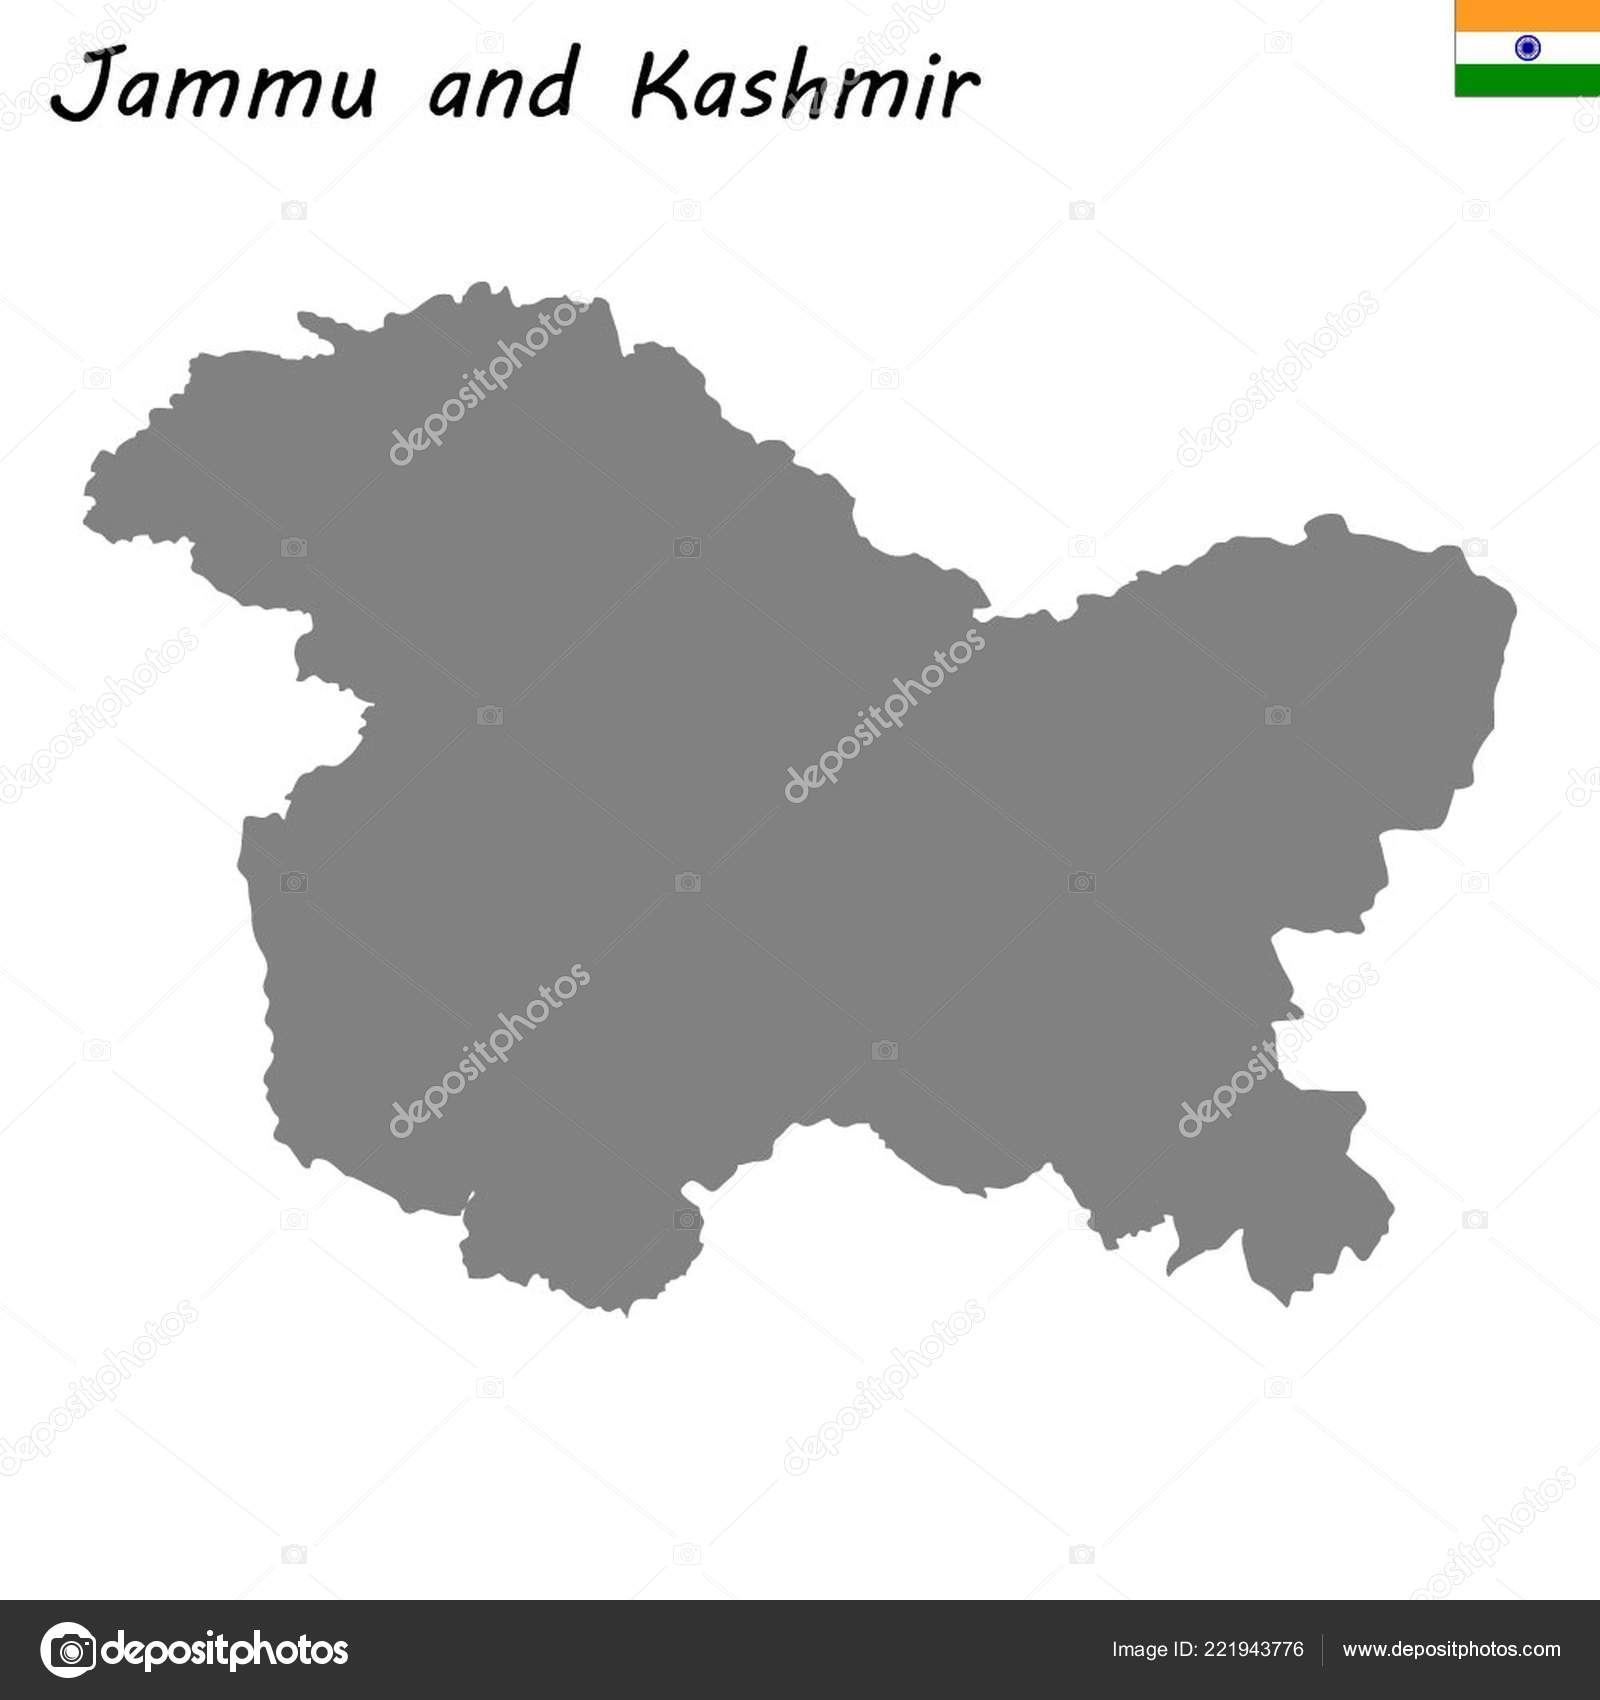 High Quality Map Jammu Kashmir State India — Stock Vector ... on indonesia on world map, rwanda on world map, khyber pass on world map, jammu on world map, jerusalem on world map, delhi sultanate on world map, orissa on world map, bangladesh on world map, pakistan on world map, philippines on world map, punjab on world map, himalayas on world map, brazil on world map, the galapagos islands on world map, chennai on world map, moscow on world map, myanmar on world map, ireland on world map, israel on world map, singapore on world map,